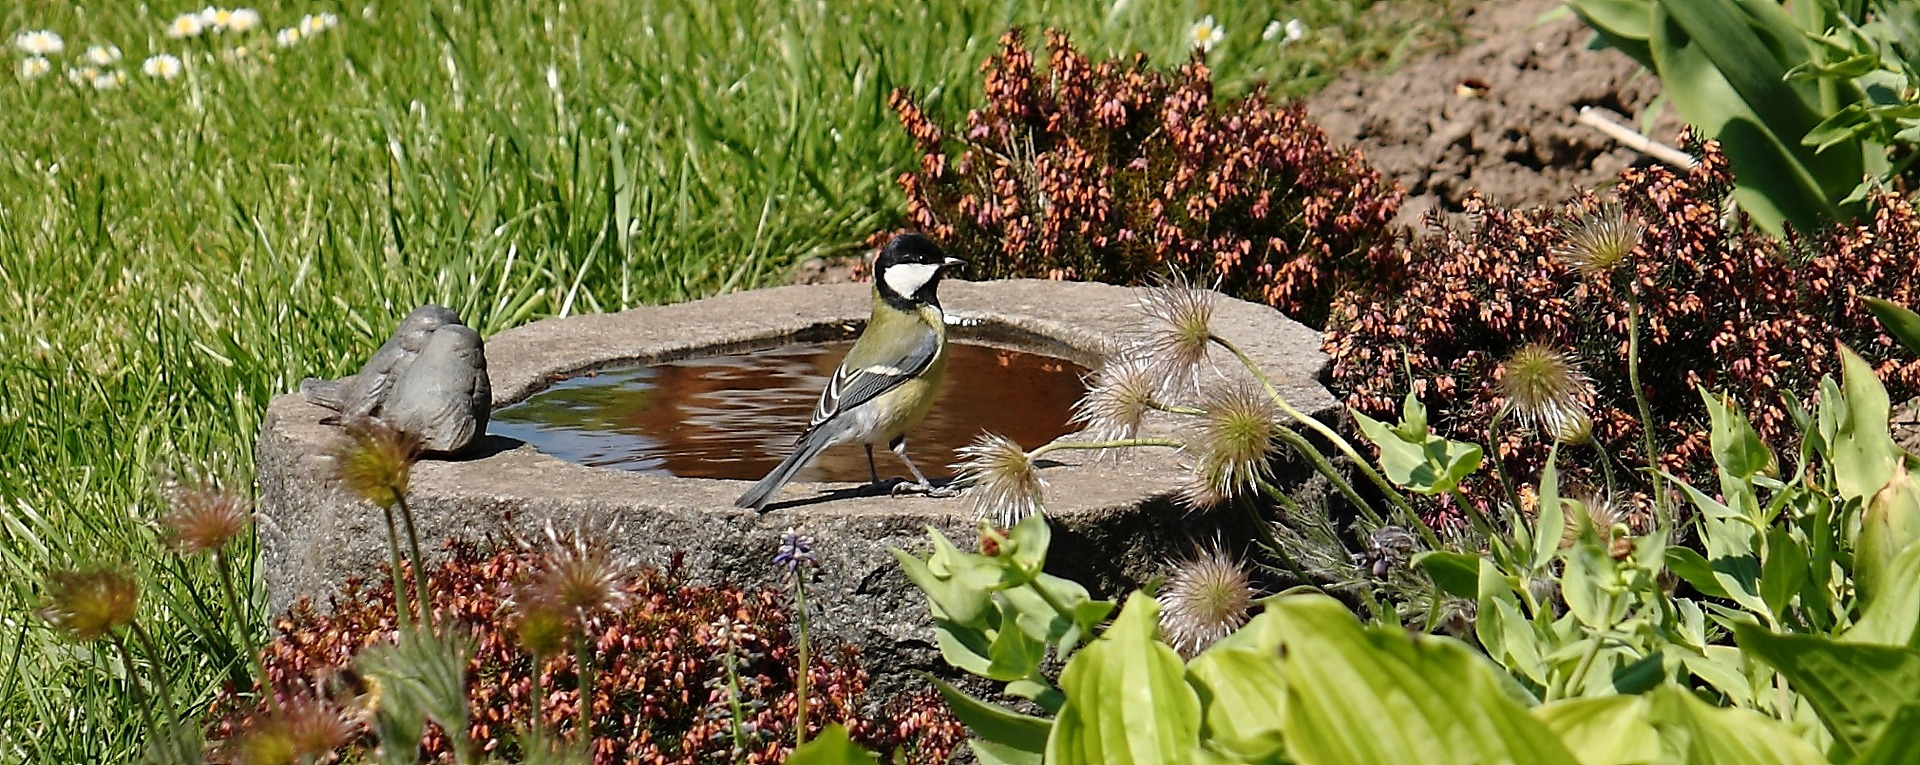 A single bird scanning for danger before cooling off in a stone birdbath.